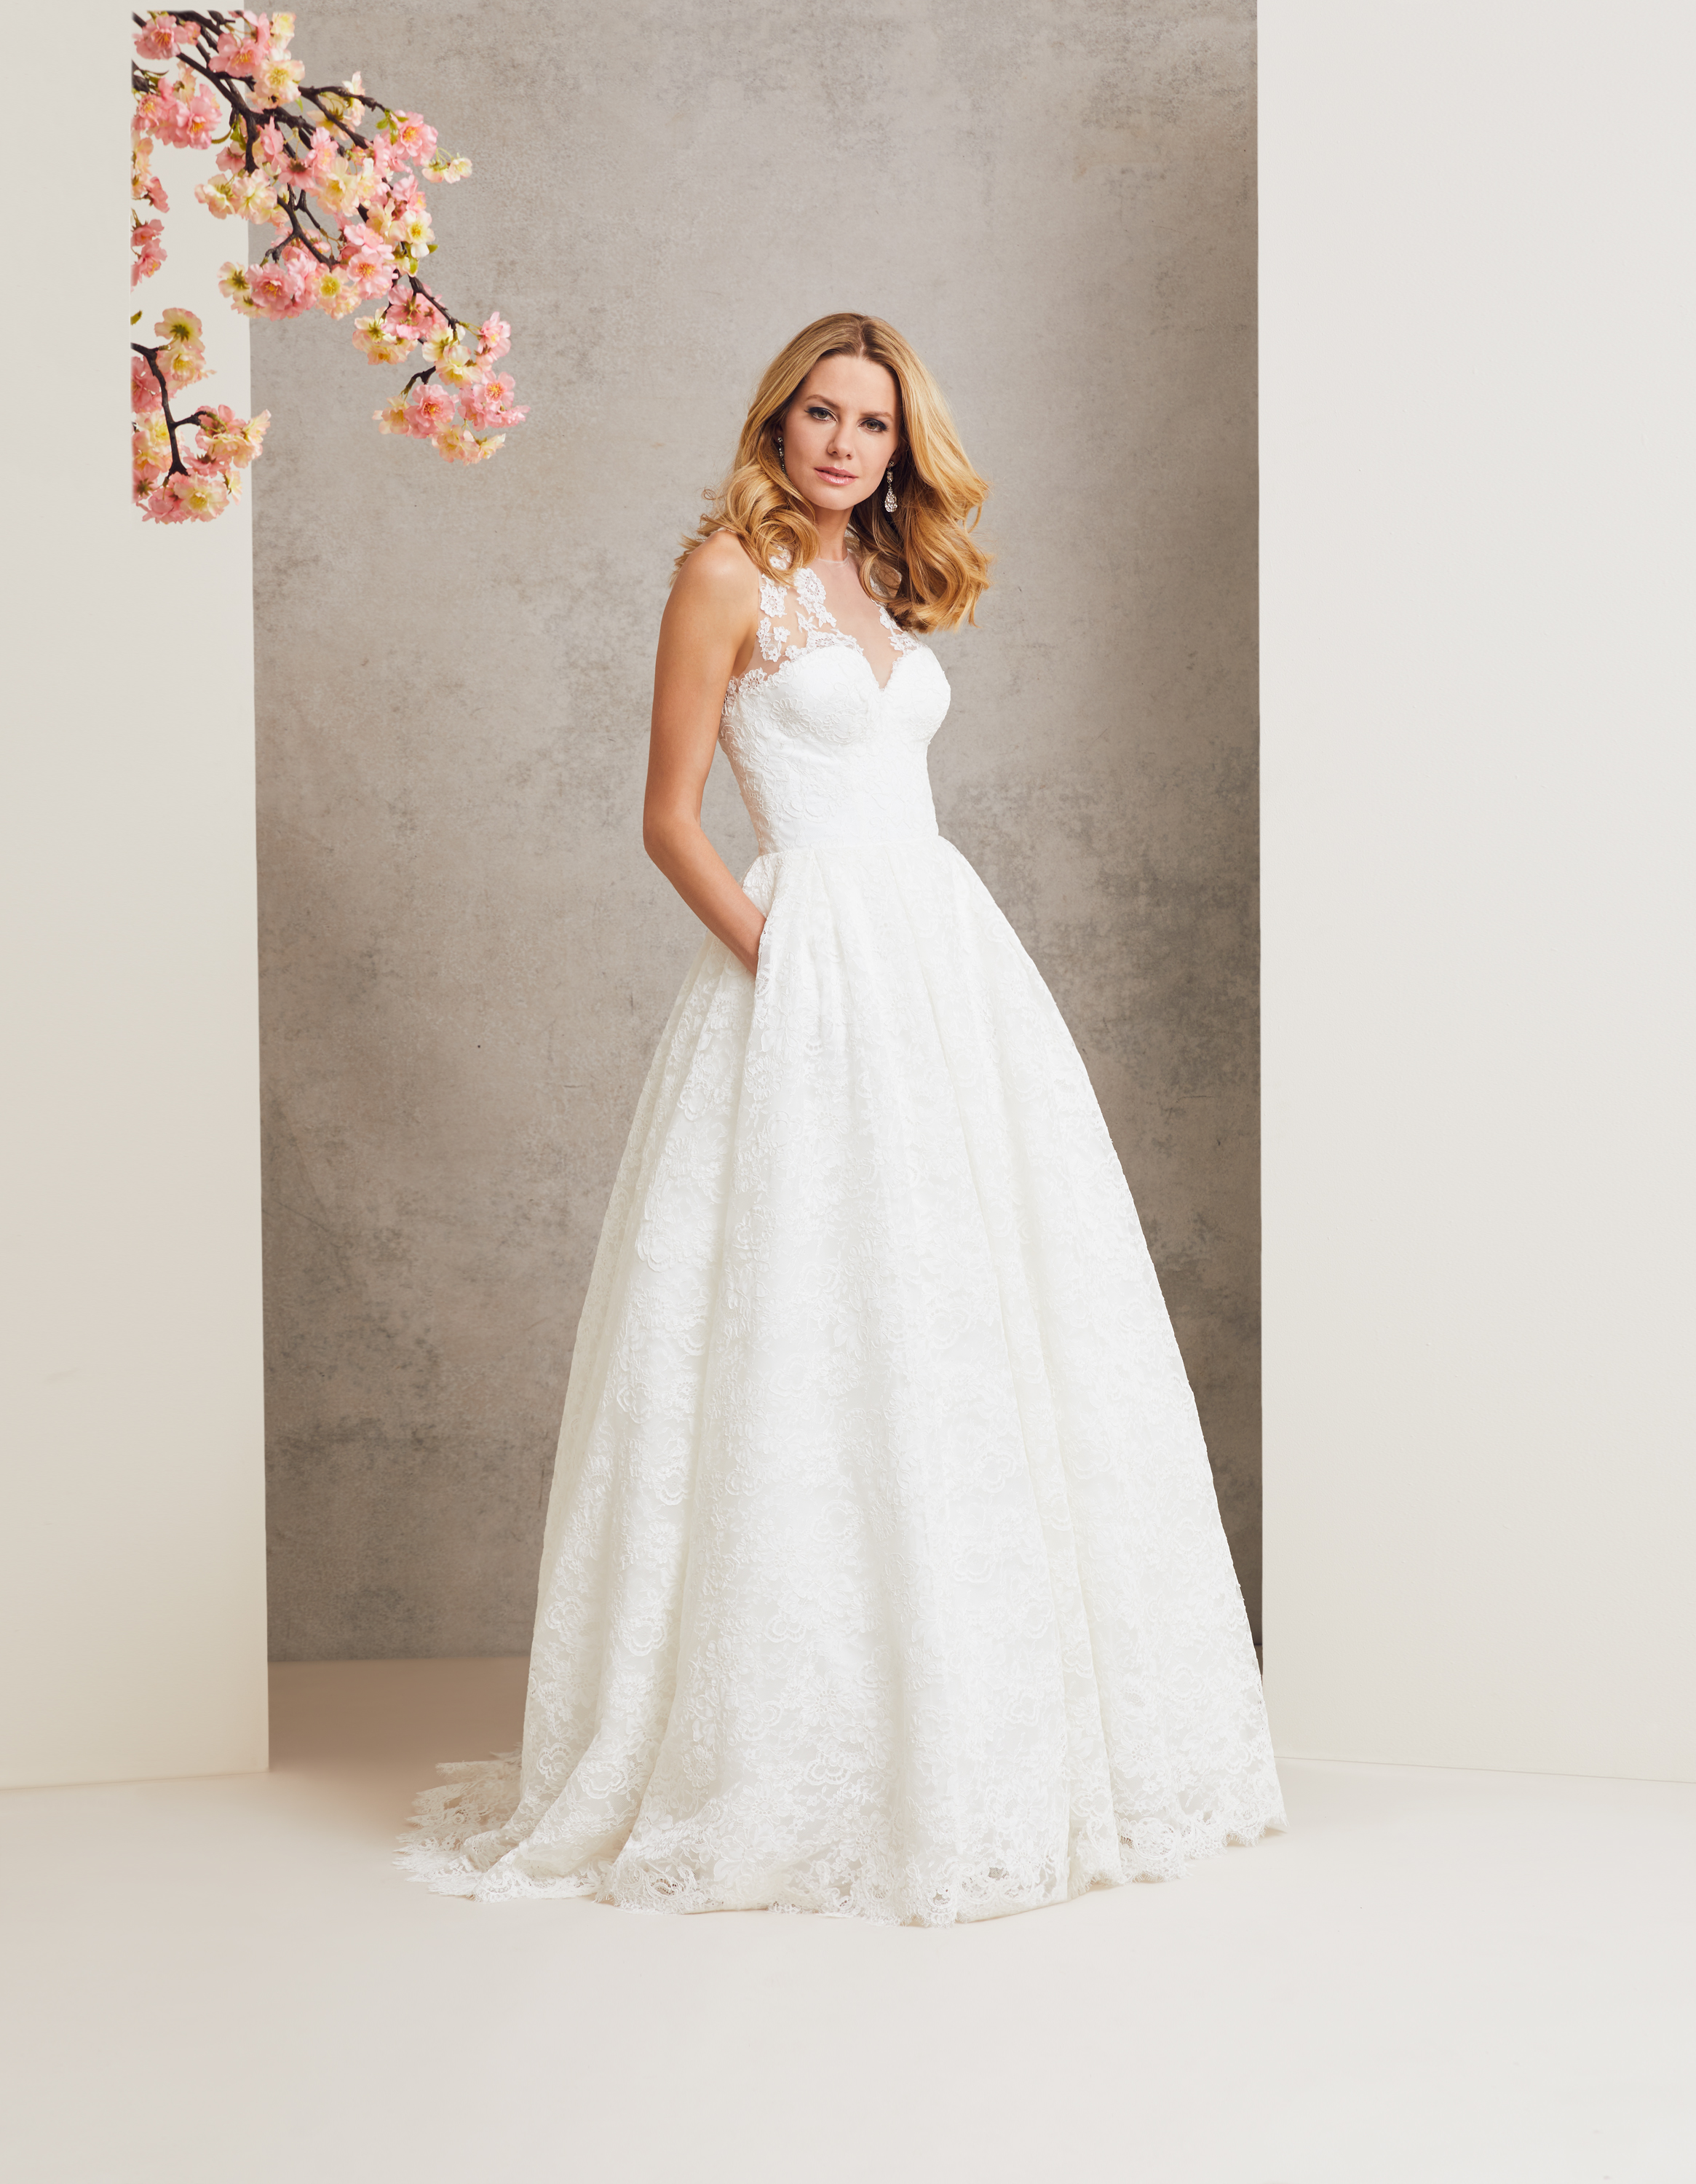 Love Story designer wedding dress by Caroline Castigliano